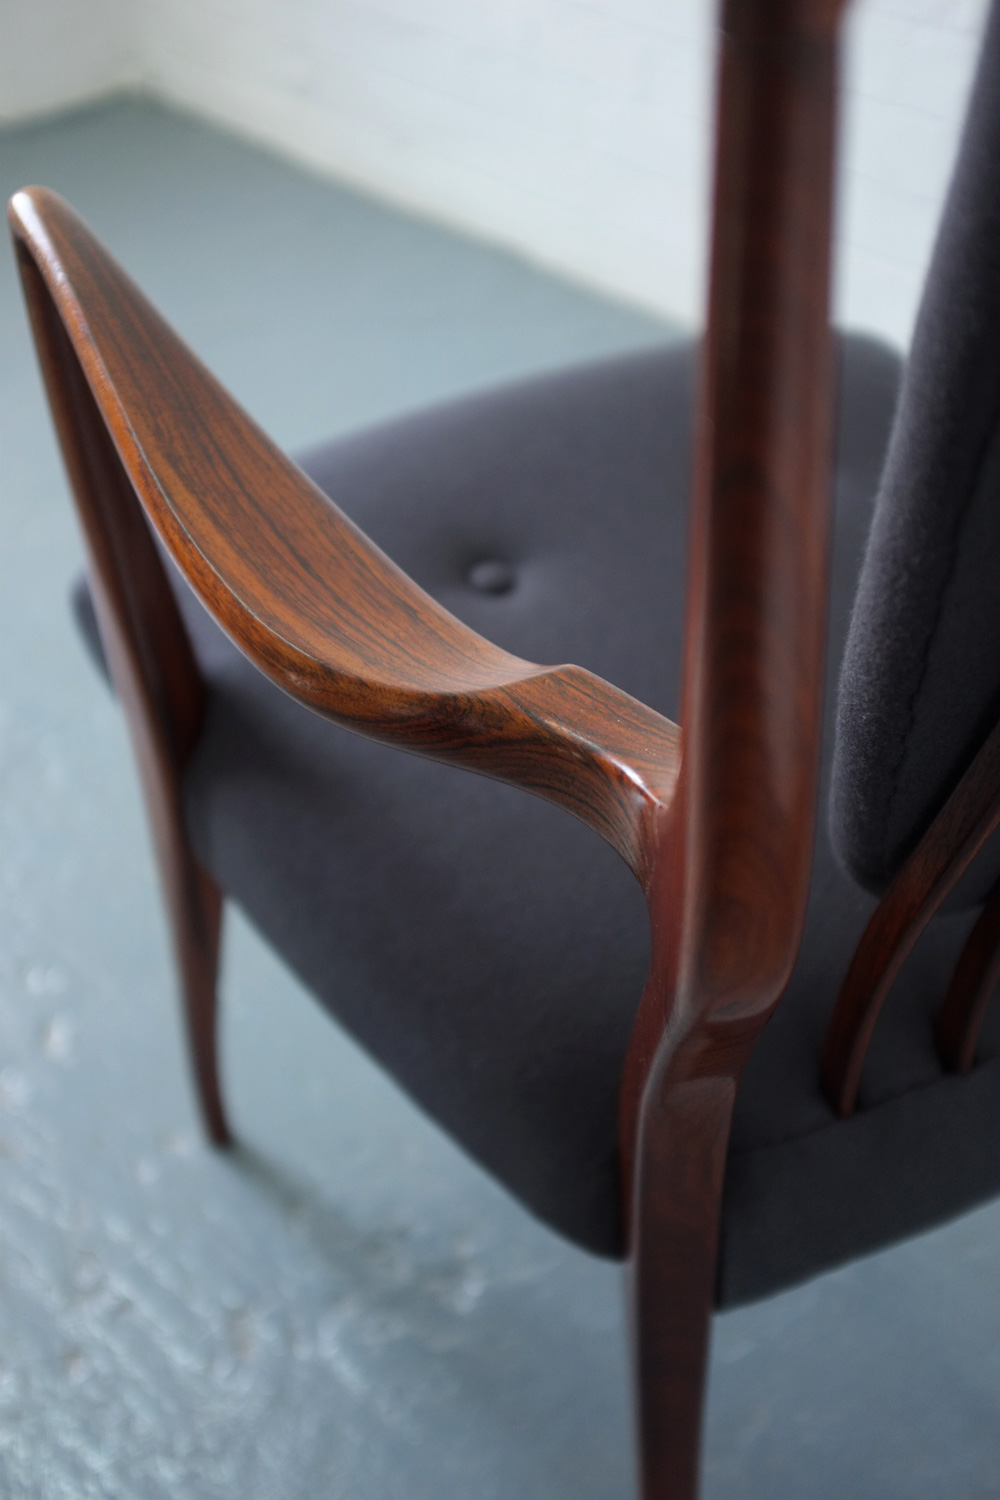 1940s rosewood chairs by AJ Milne